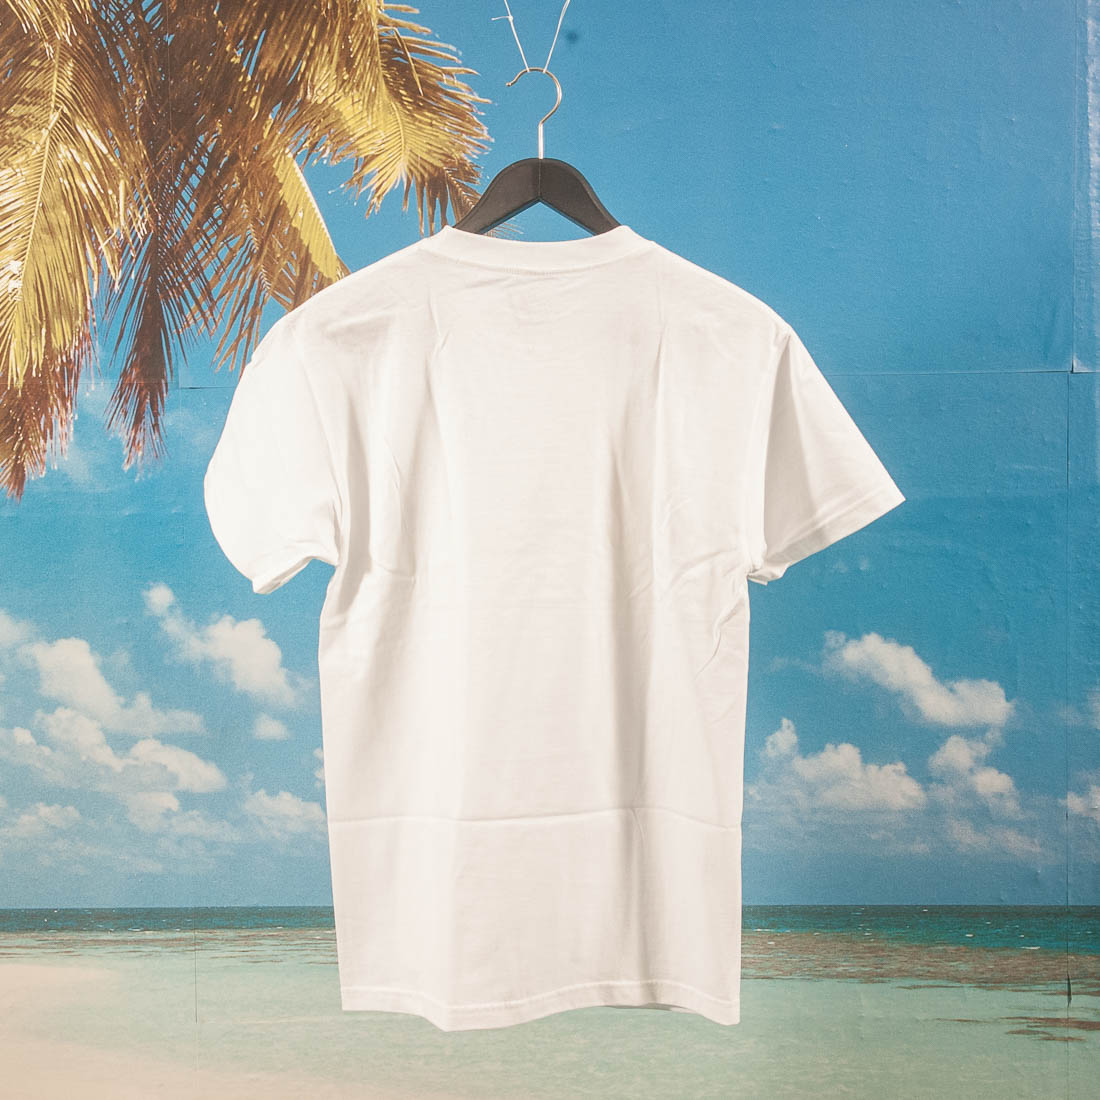 Bronze 56k - Firewall T-Shirt - White